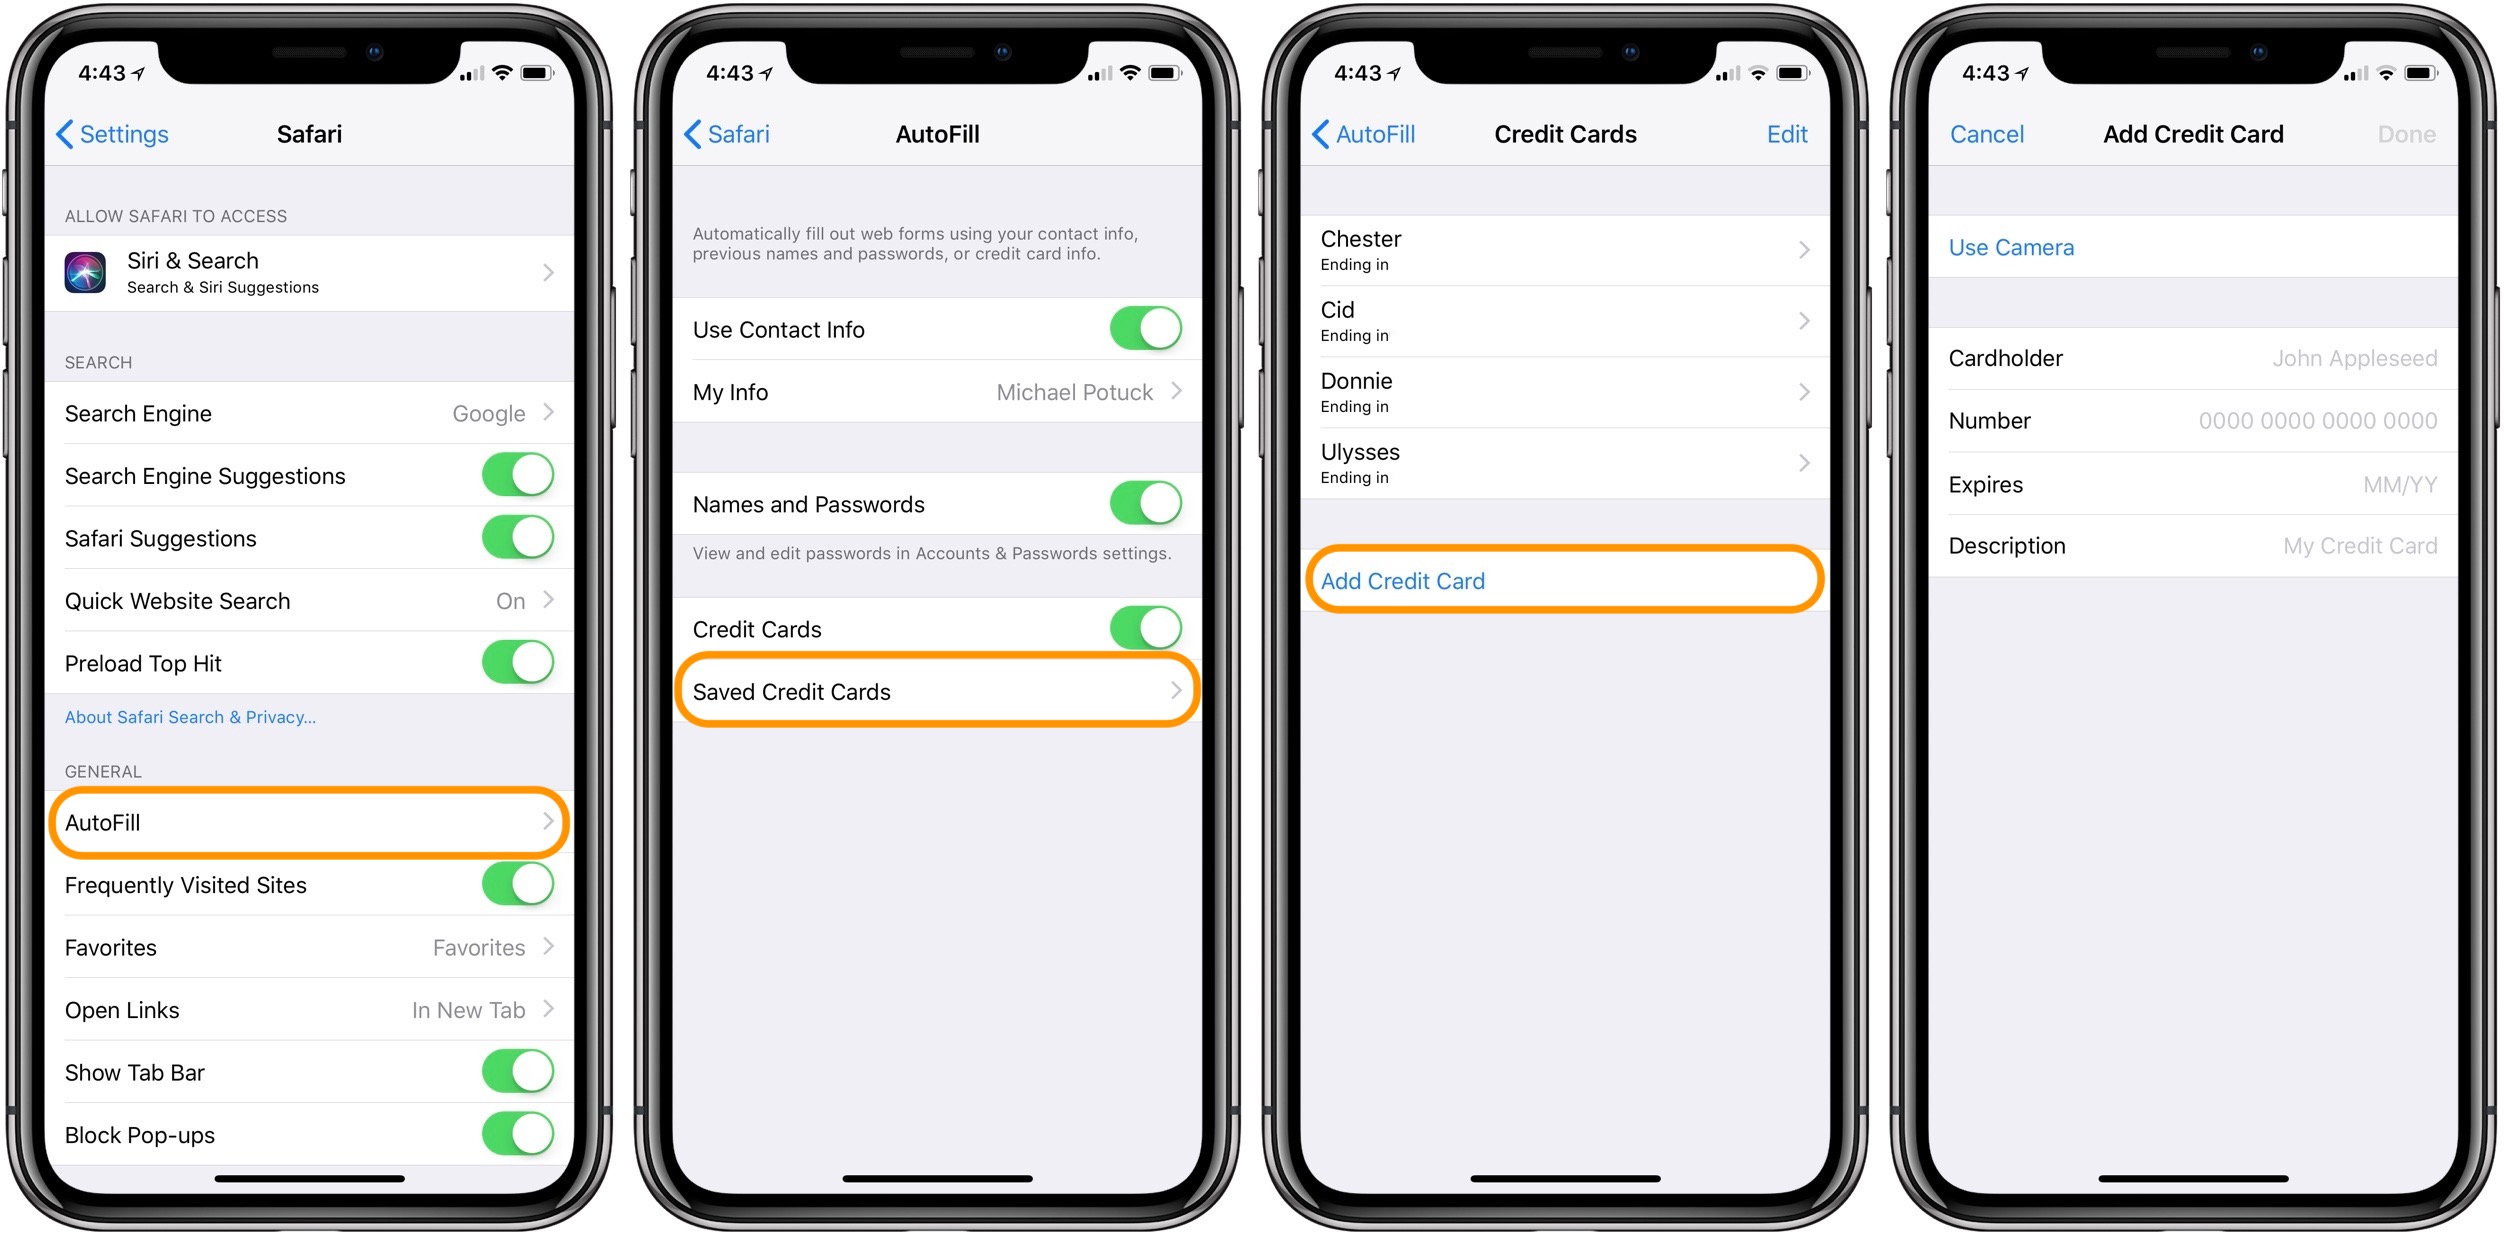 File Check Out Card how to add credit cards to safari's autofill on iphone - 9to5mac